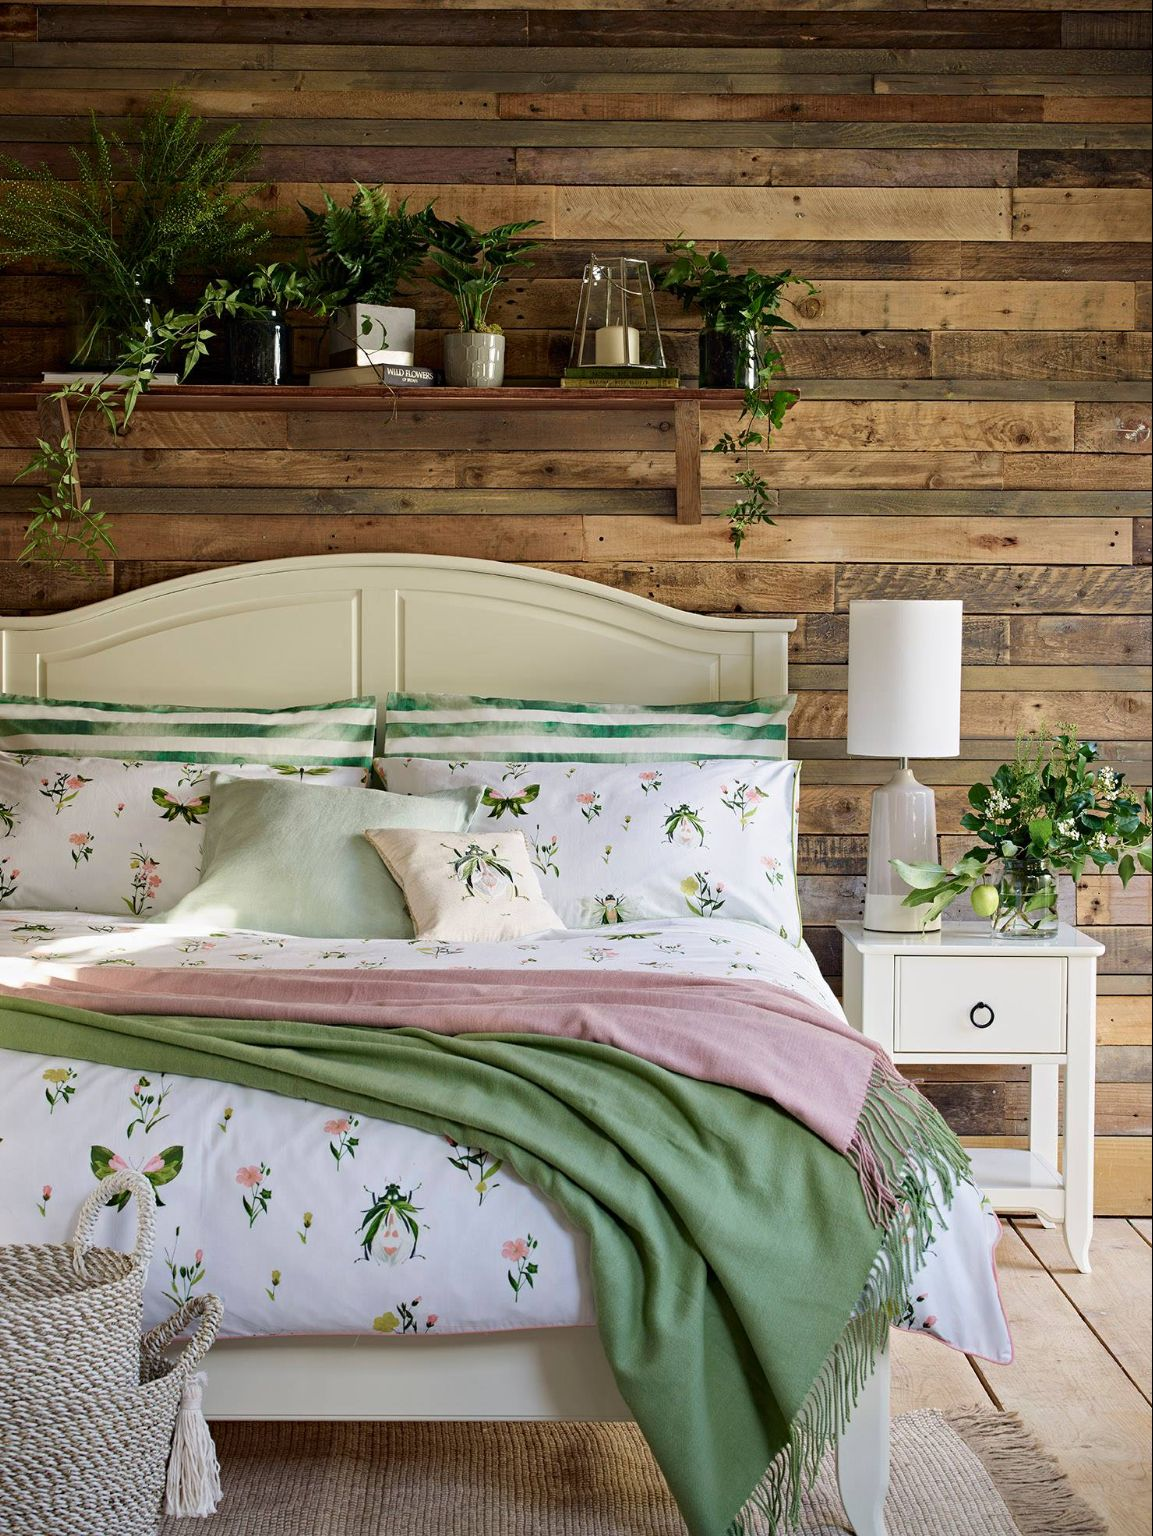 Pin By Mina Maged On Chambre A Coucher Sage Green Bedroom Bedroom Green Green Bedroom Decor